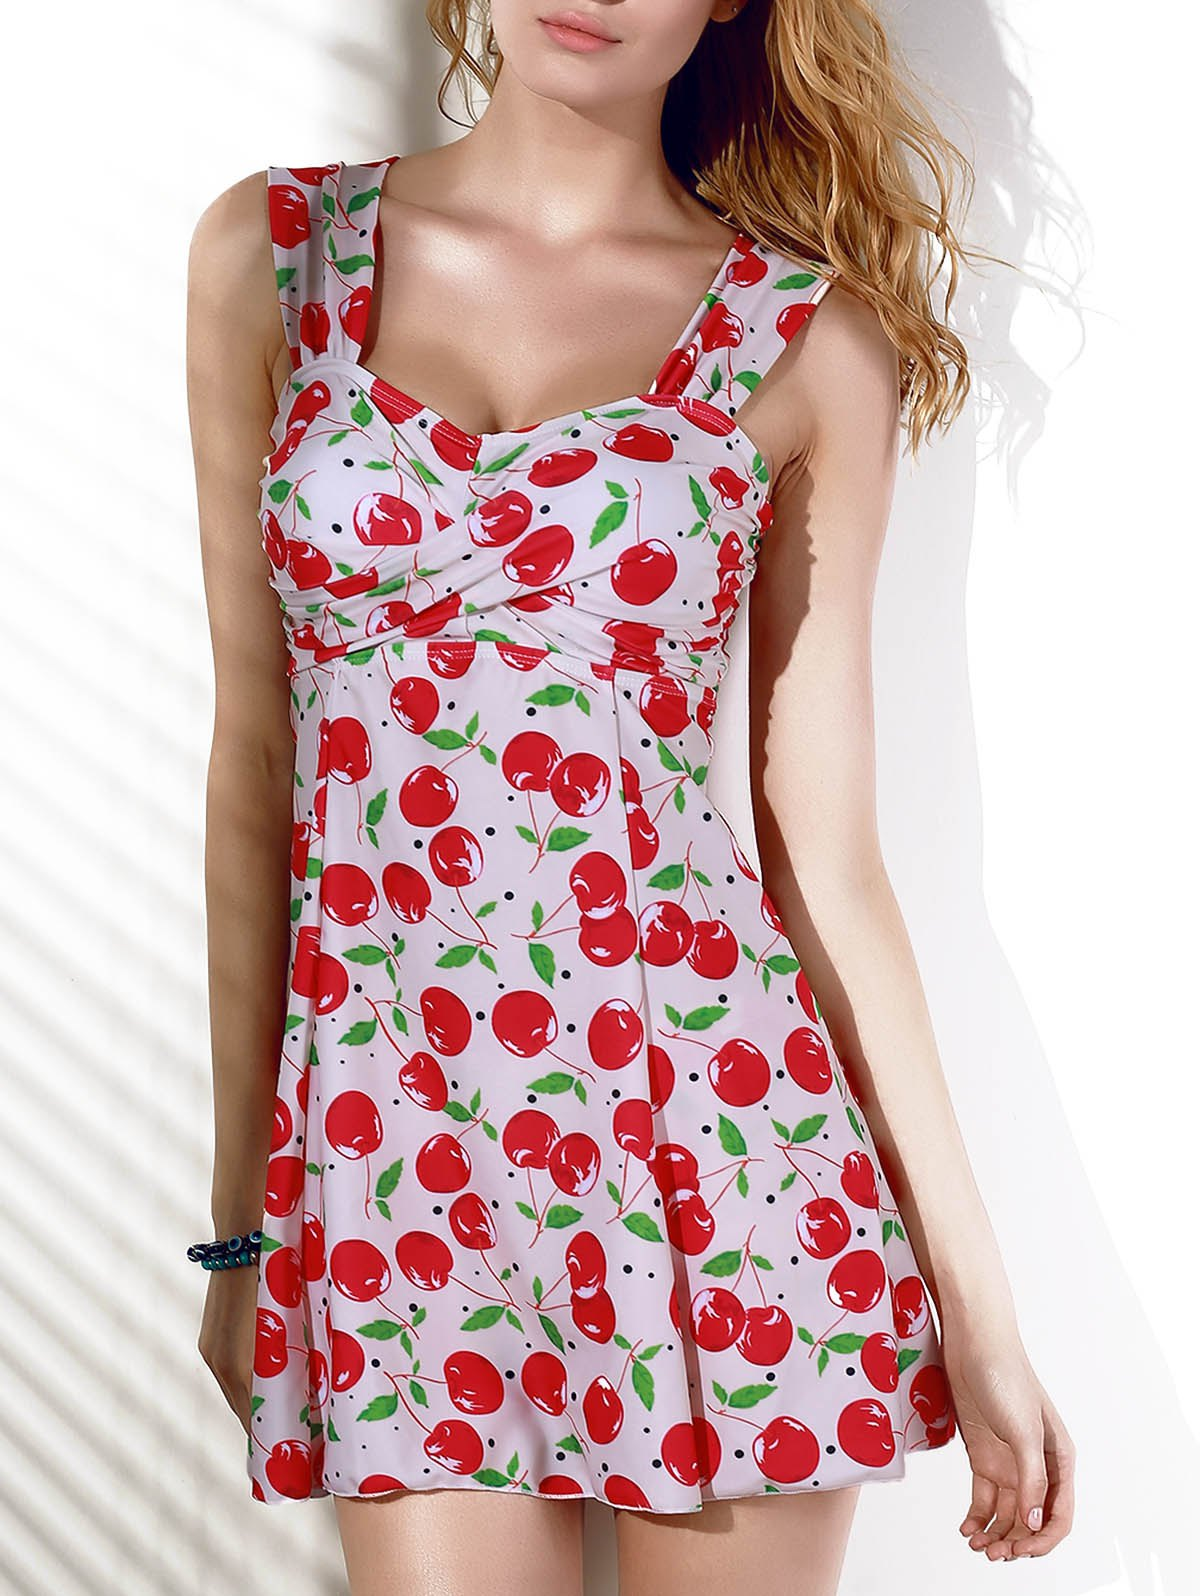 Fashionable Slimming Cherry Print Two-Piece Women's Swimsuit - RED M